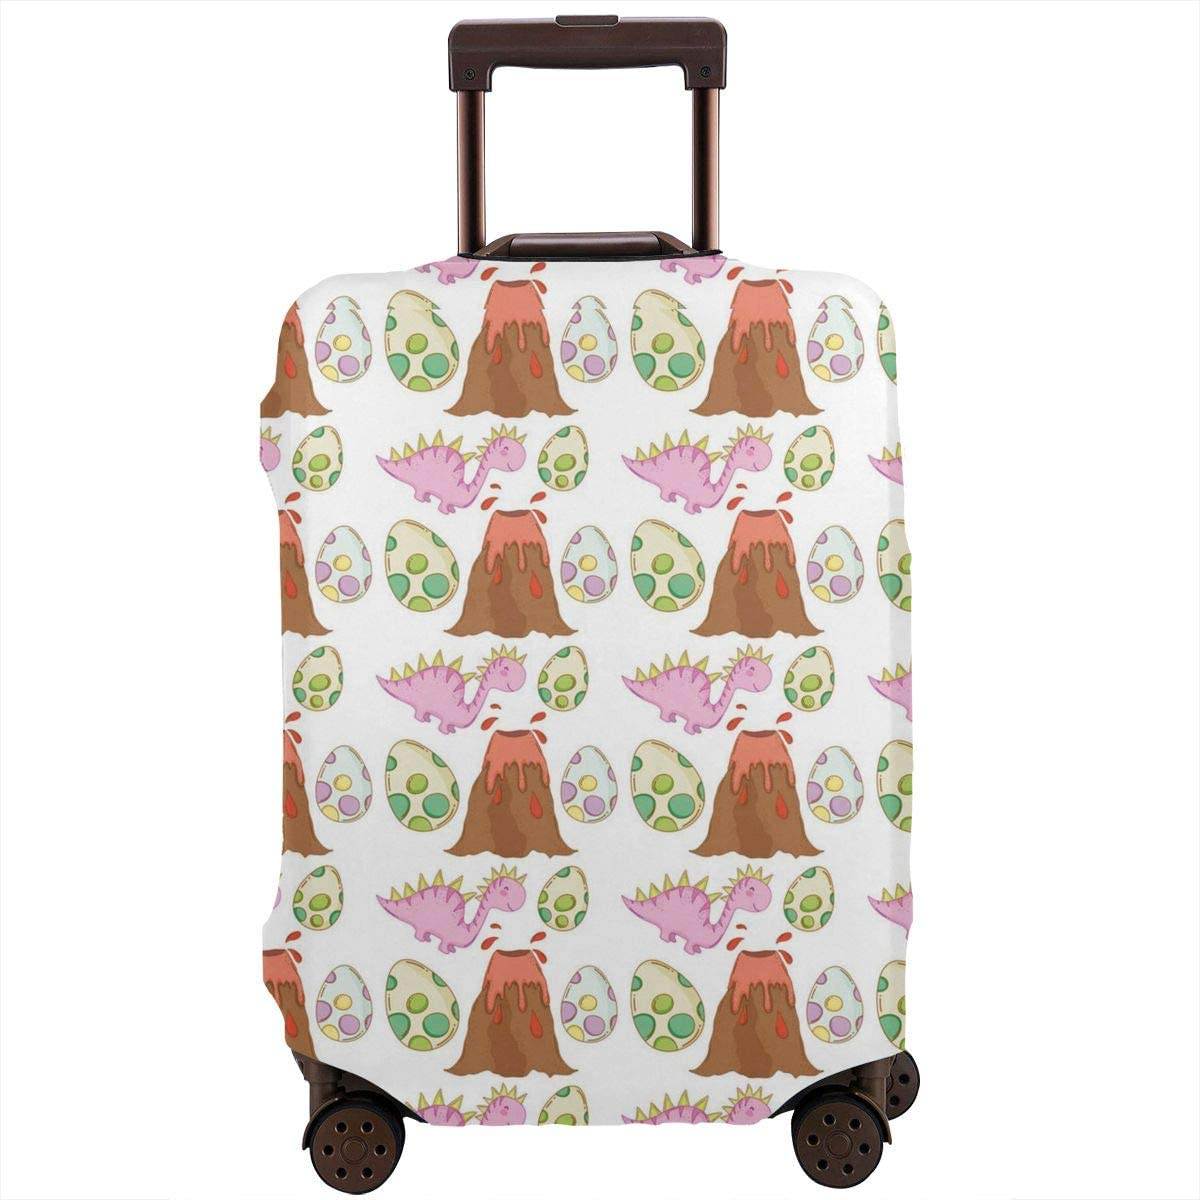 Octopus Tentacles Luggage Protector Cover XL Travel Suitcase Baggage Protective Cover Anti Scratch Protector